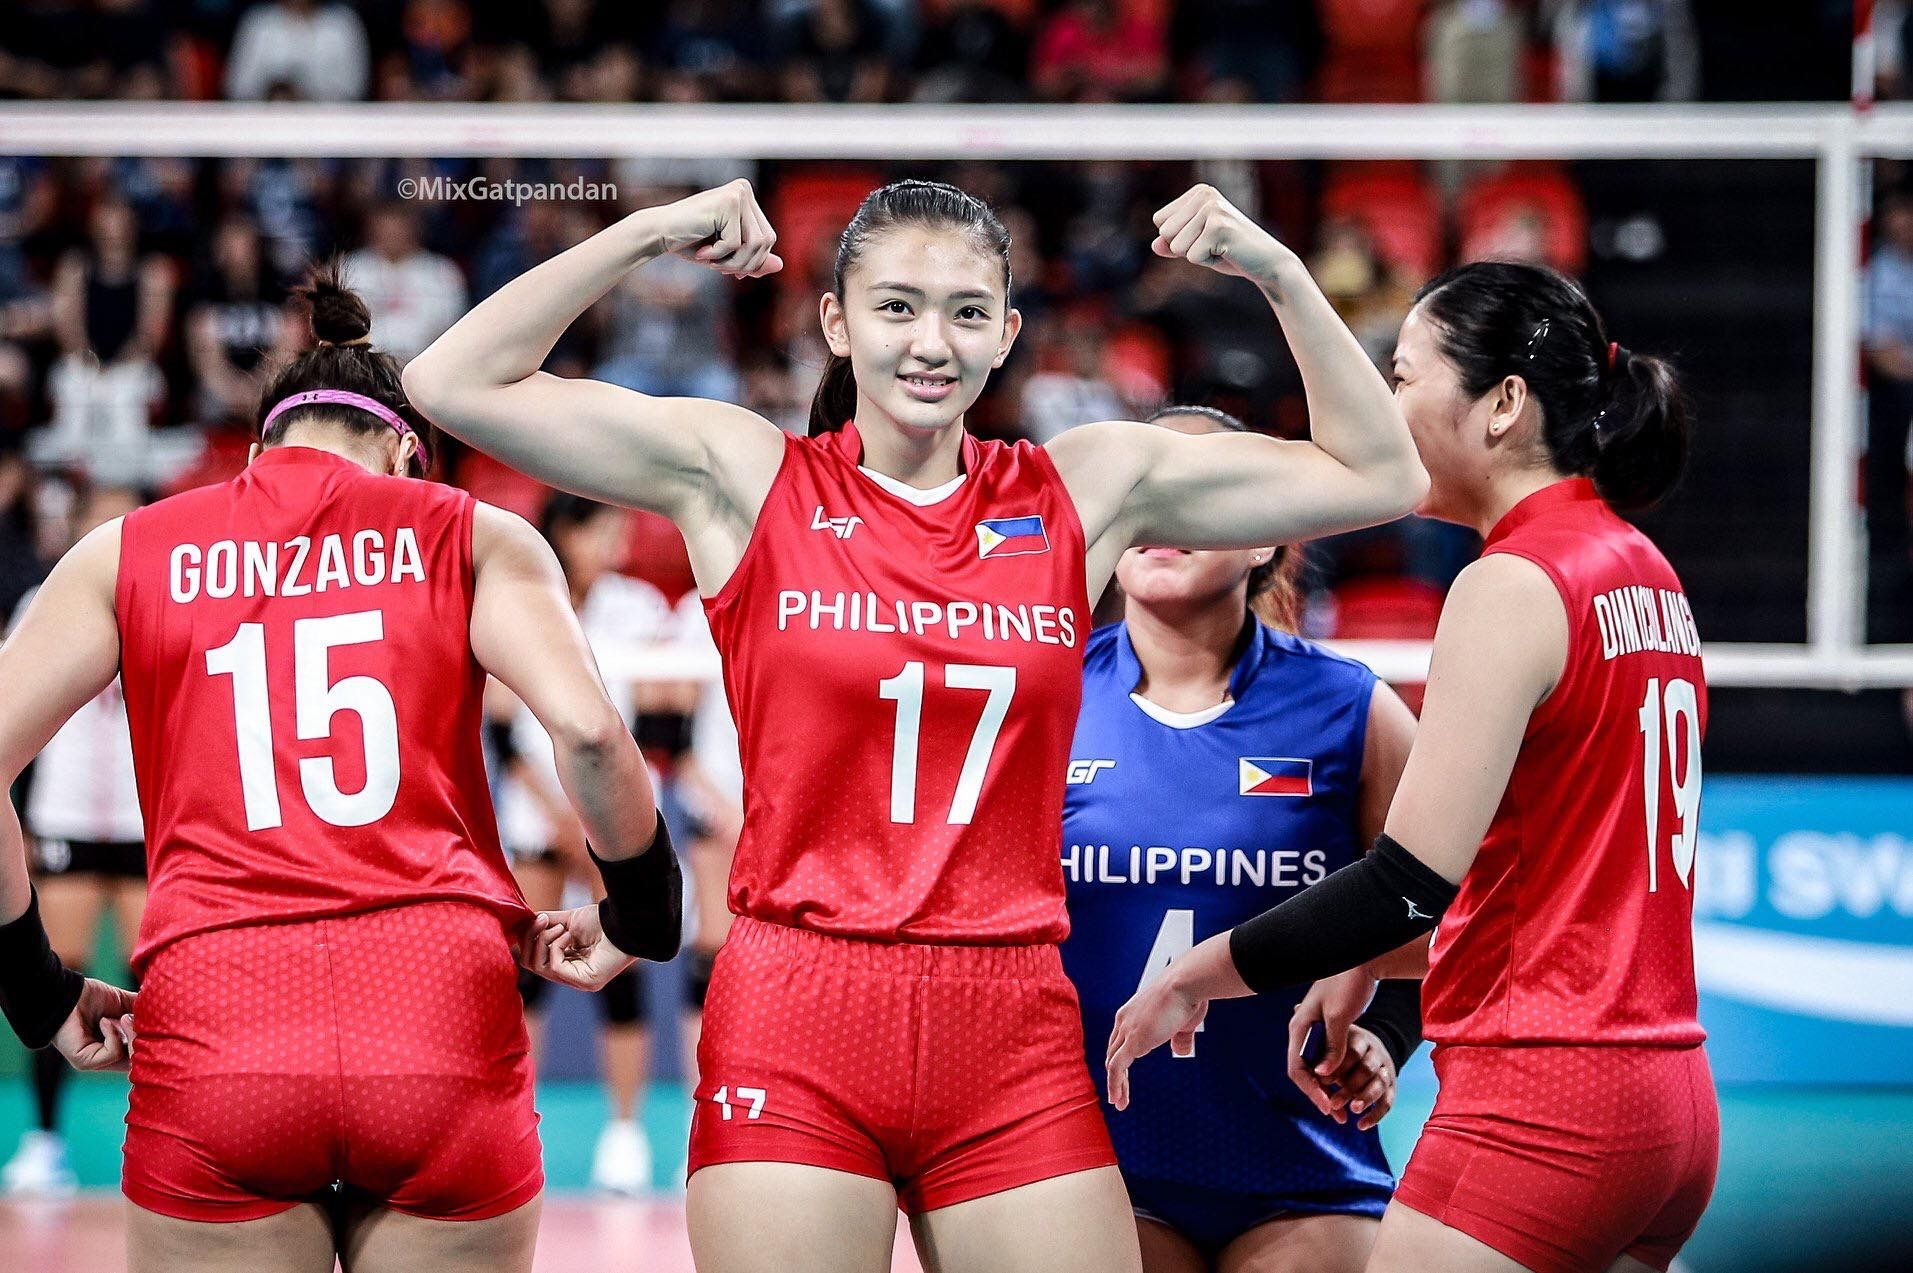 Sea Games In 2020 Volleyball Outfits Volleyball Volleyball Players